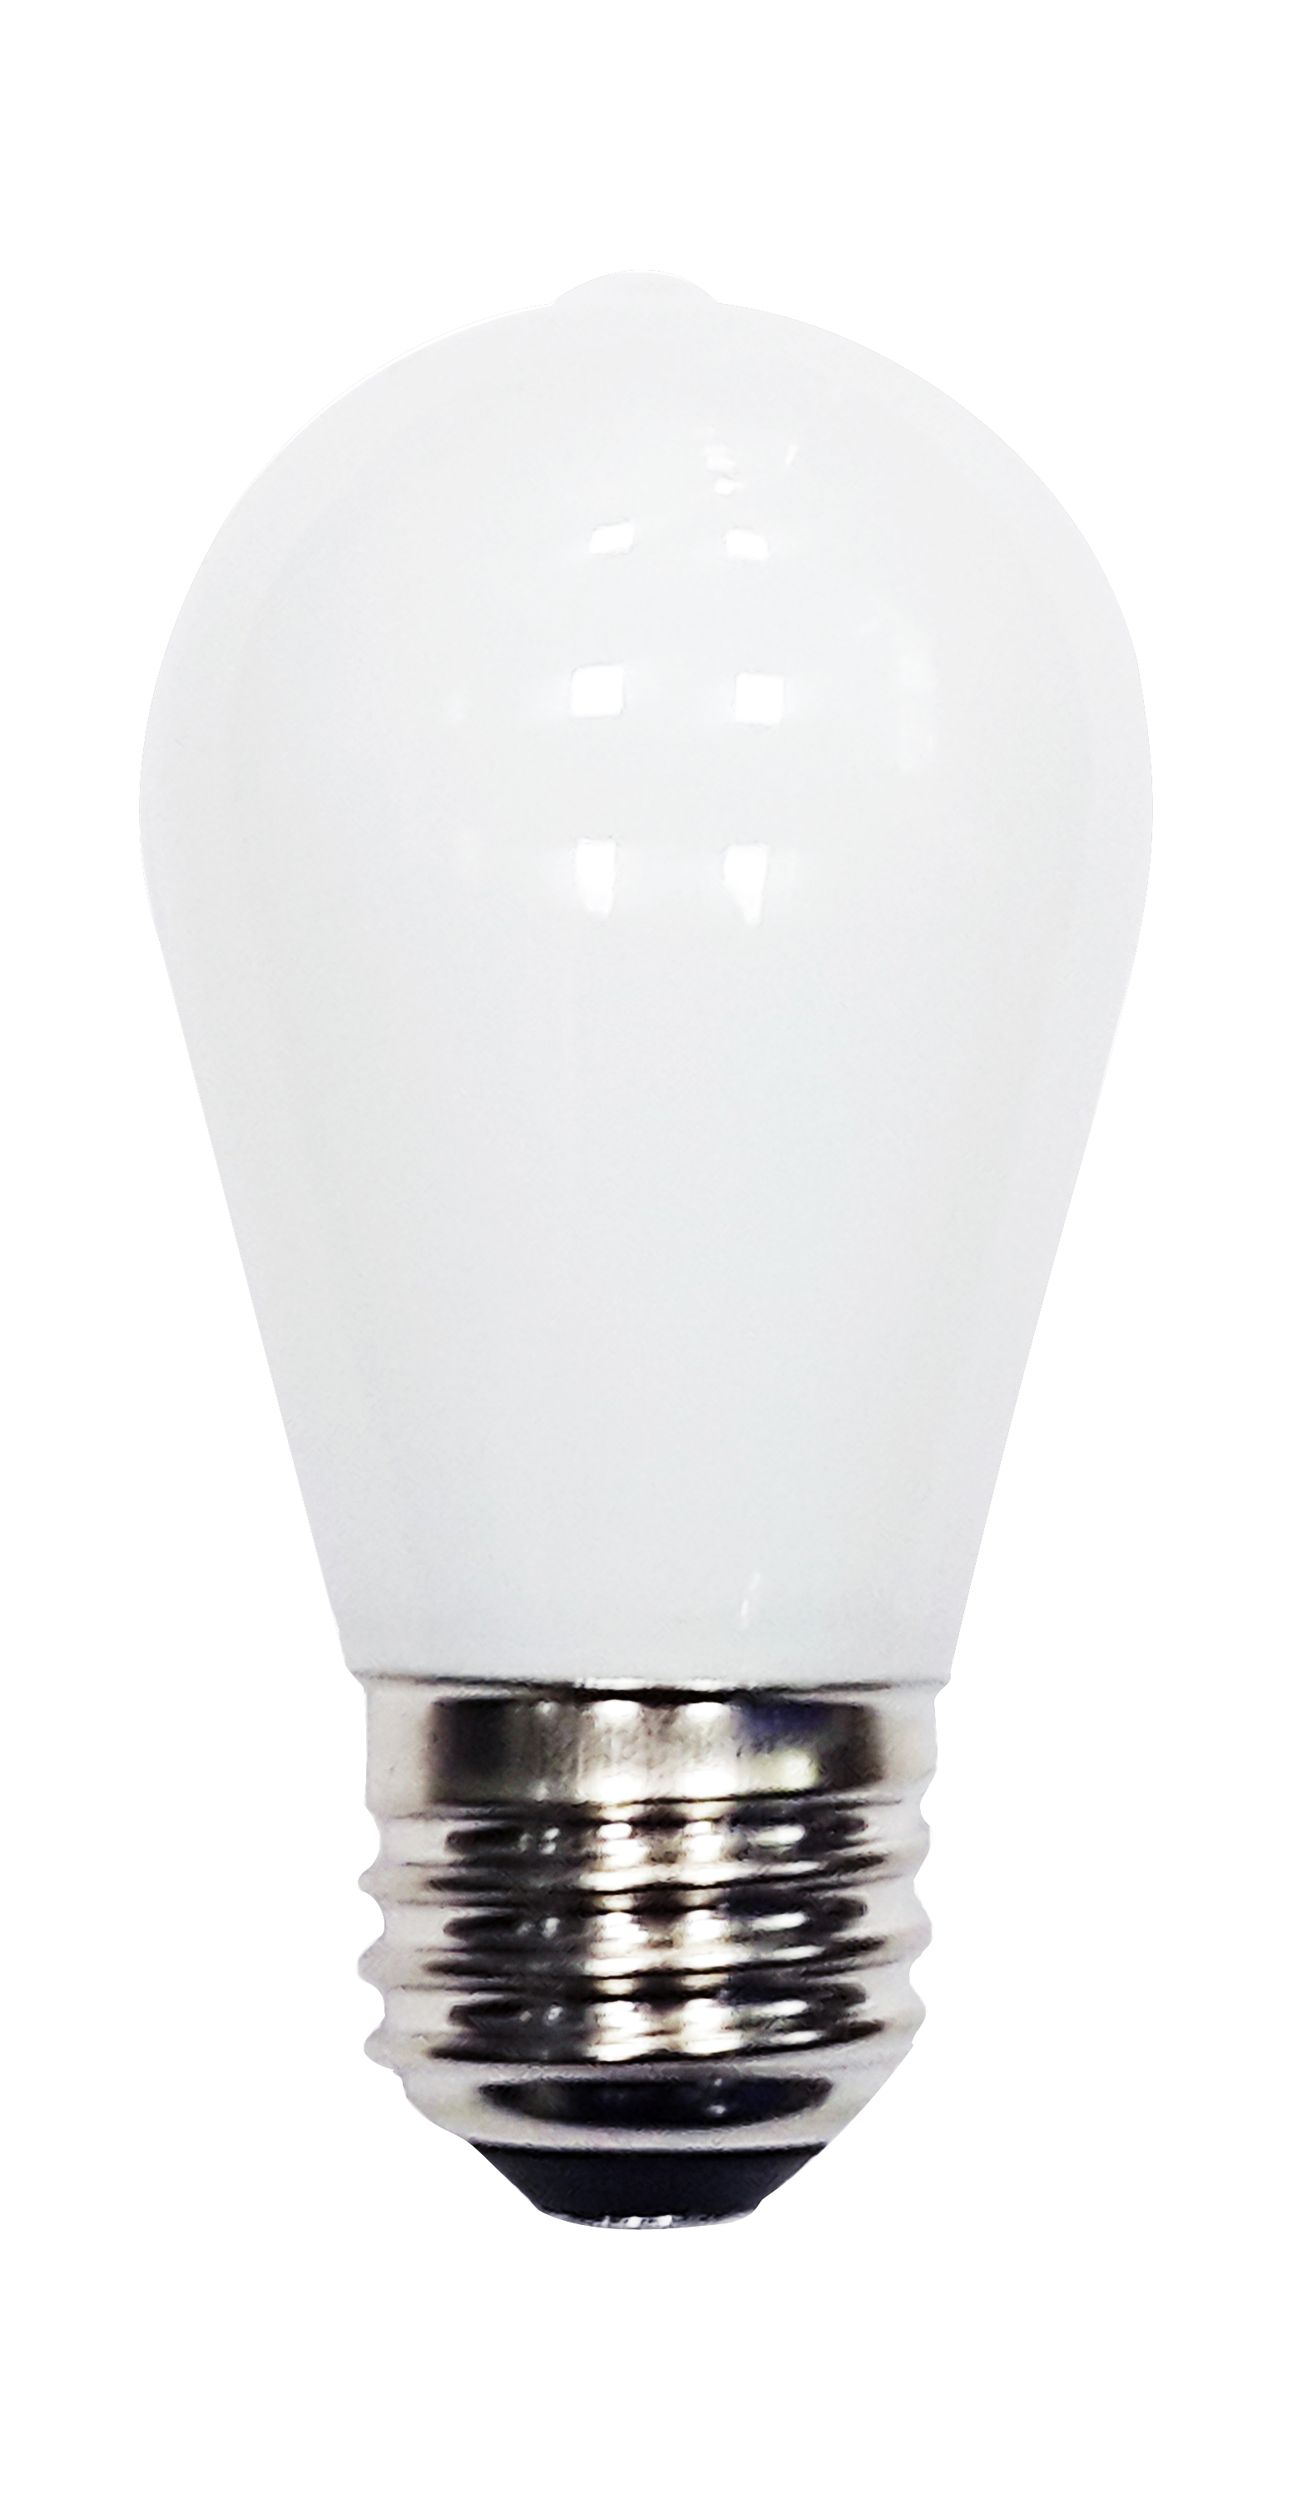 40W Equivalent Tesler Frosted 4W LED Dimmable Standard  sc 1 st  L&s Plus & Low Wattage Light Bulbs - 3 to 15 Watts | Lamps Plus azcodes.com